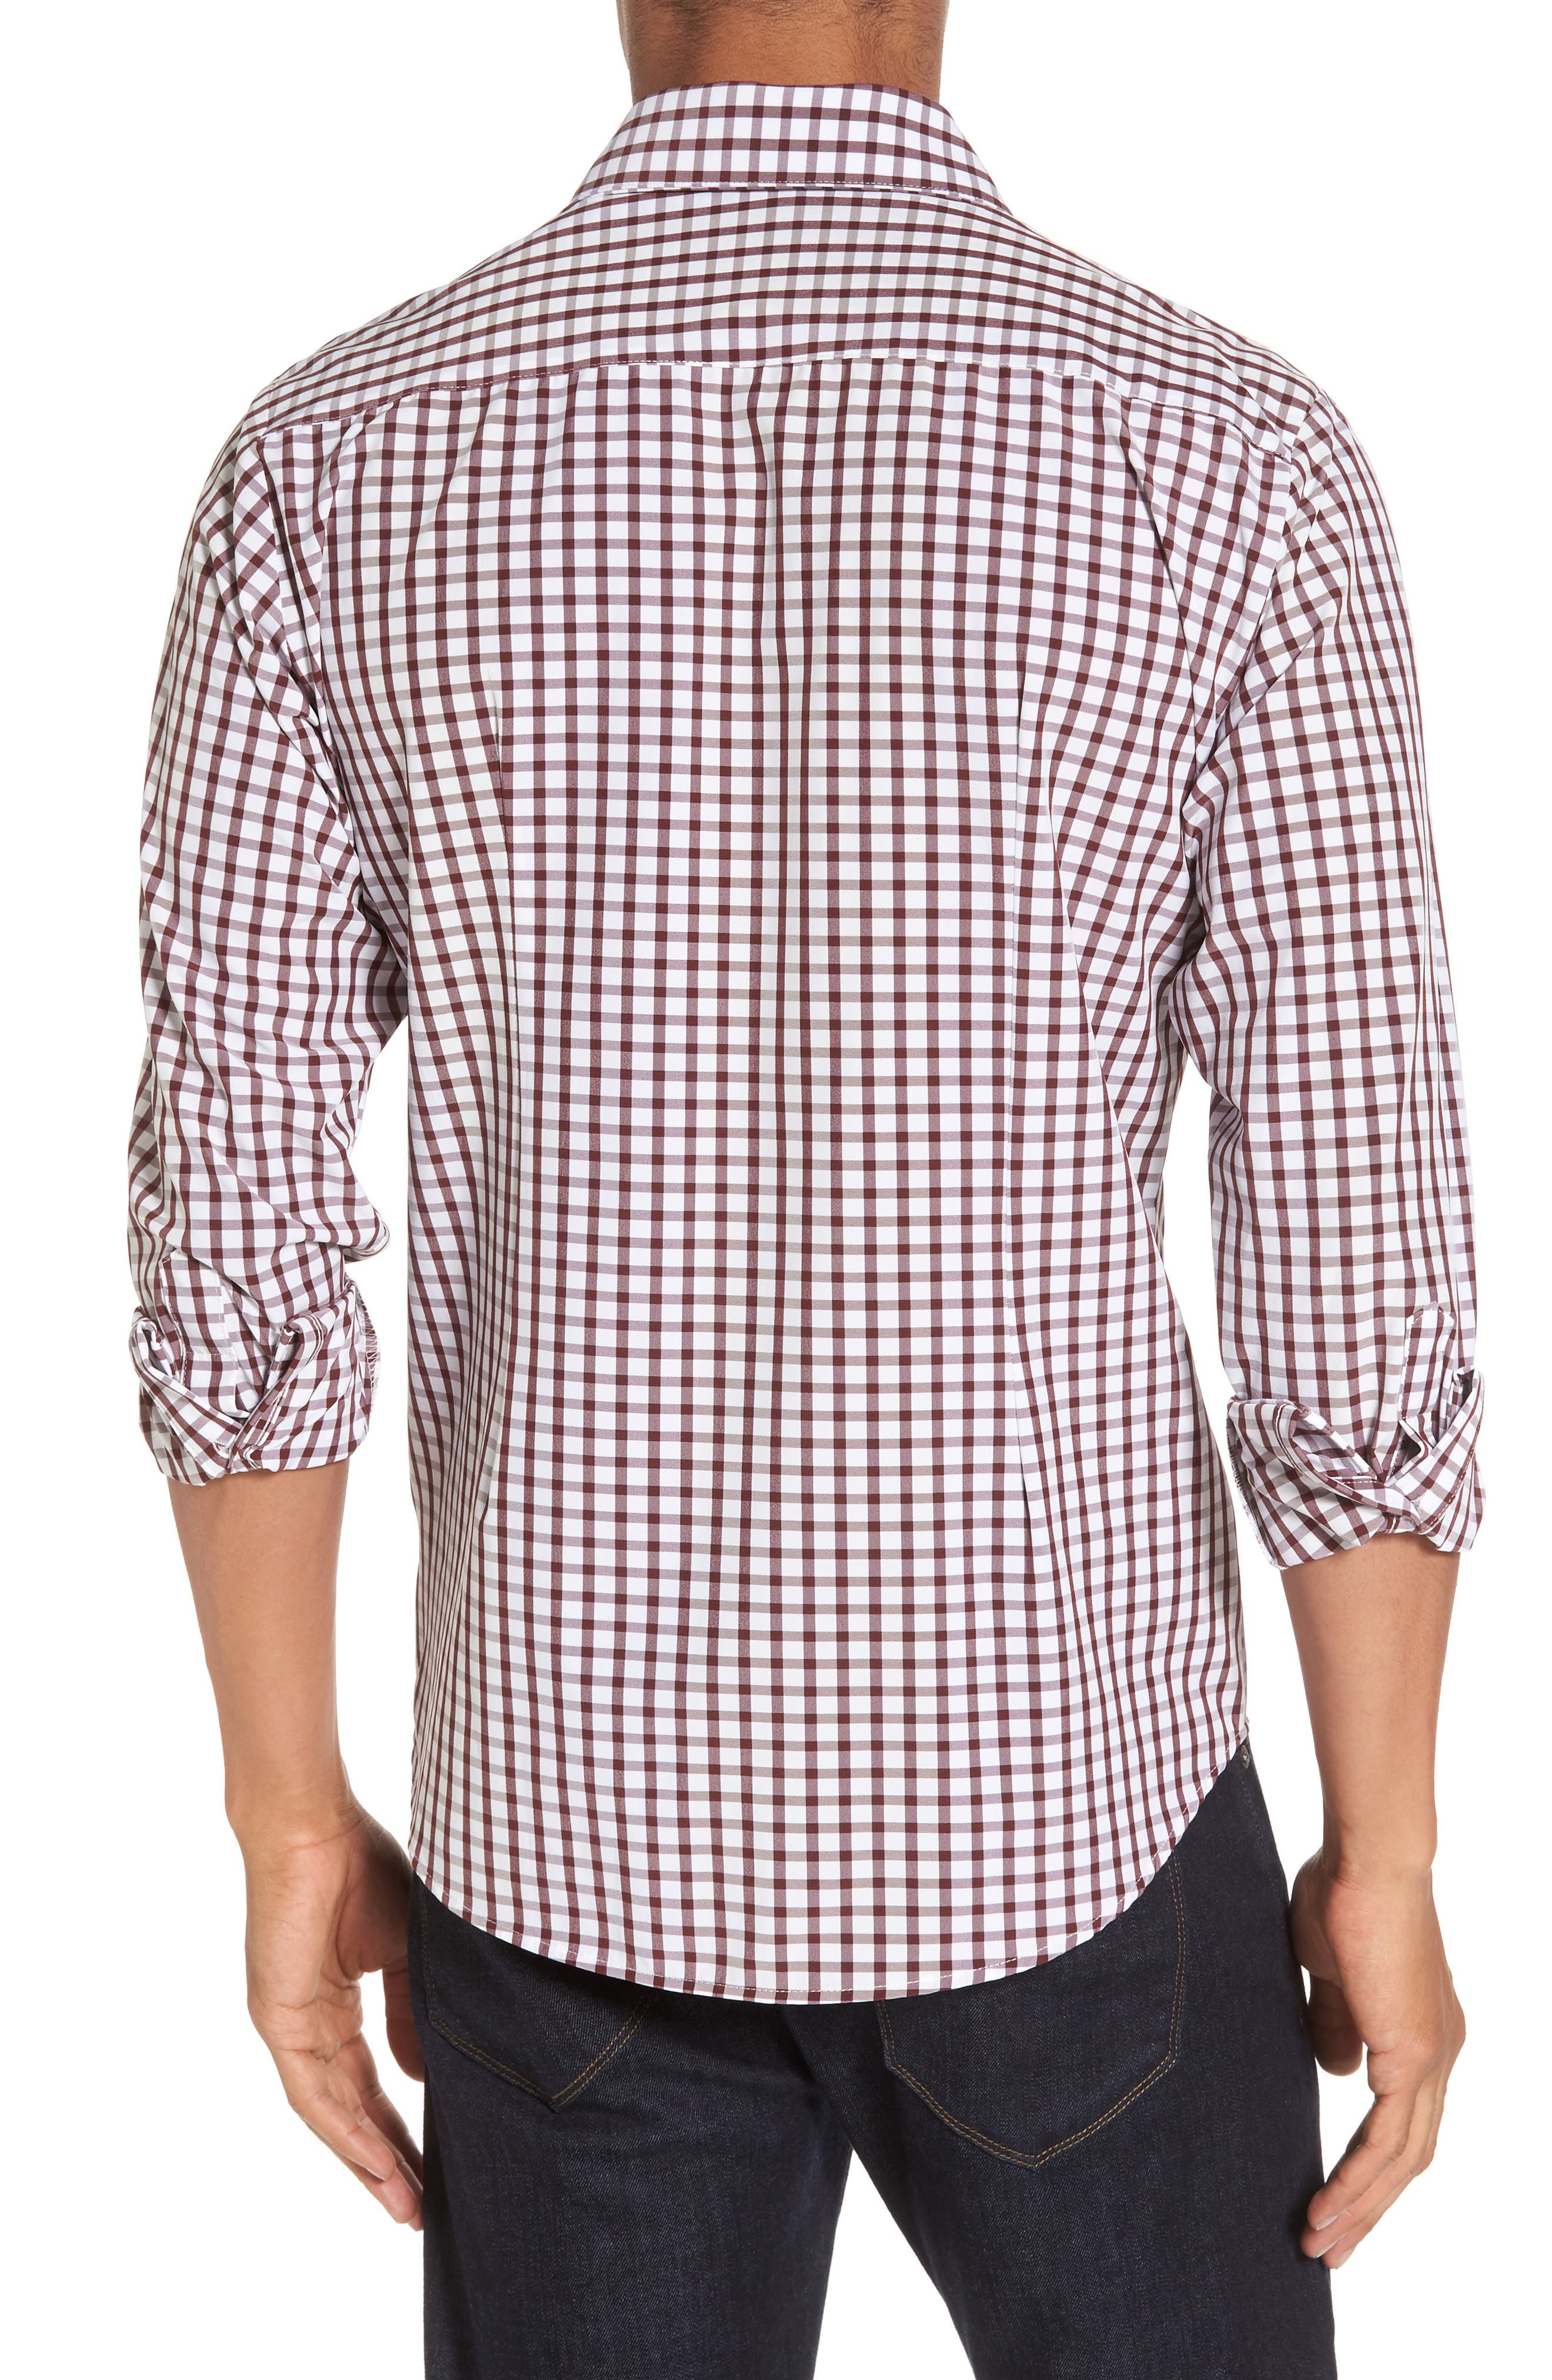 Cooper Check Performance Sport Shirt,                             Alternate thumbnail 2, color,                             Red